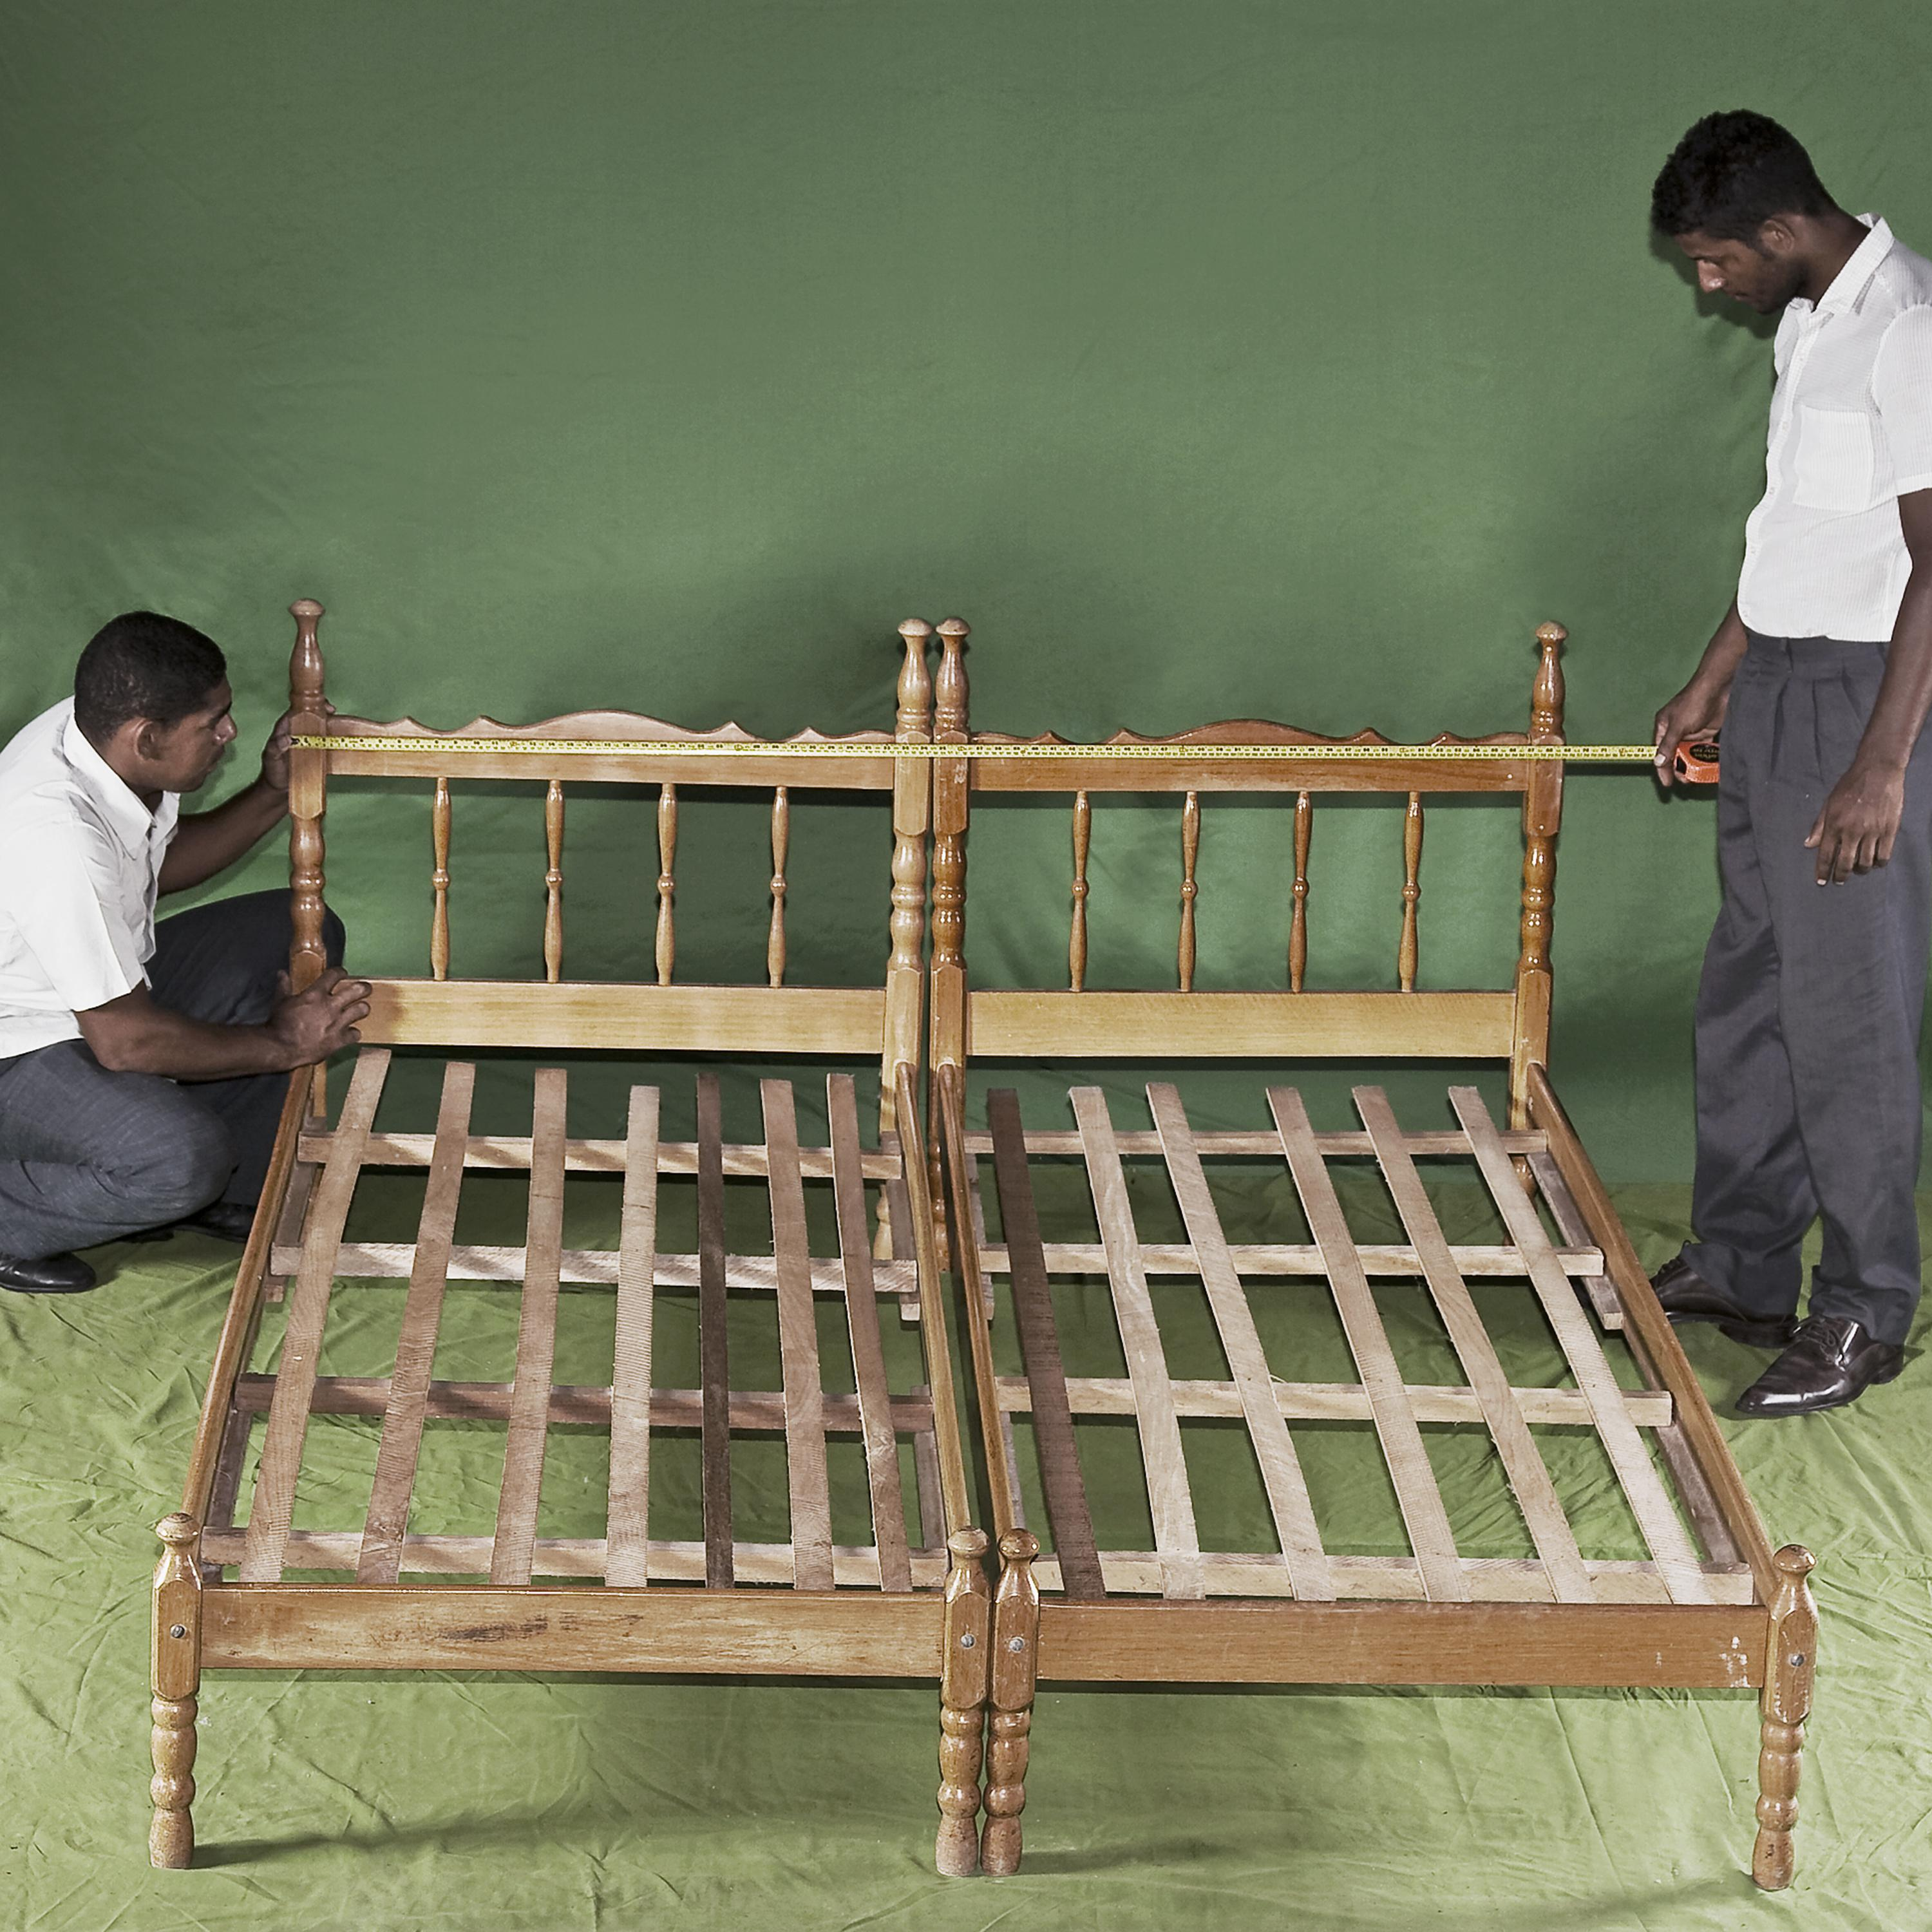 Two people wearing white shirts and black pants stand on opposite sides of a wooden bed frame in a green room.